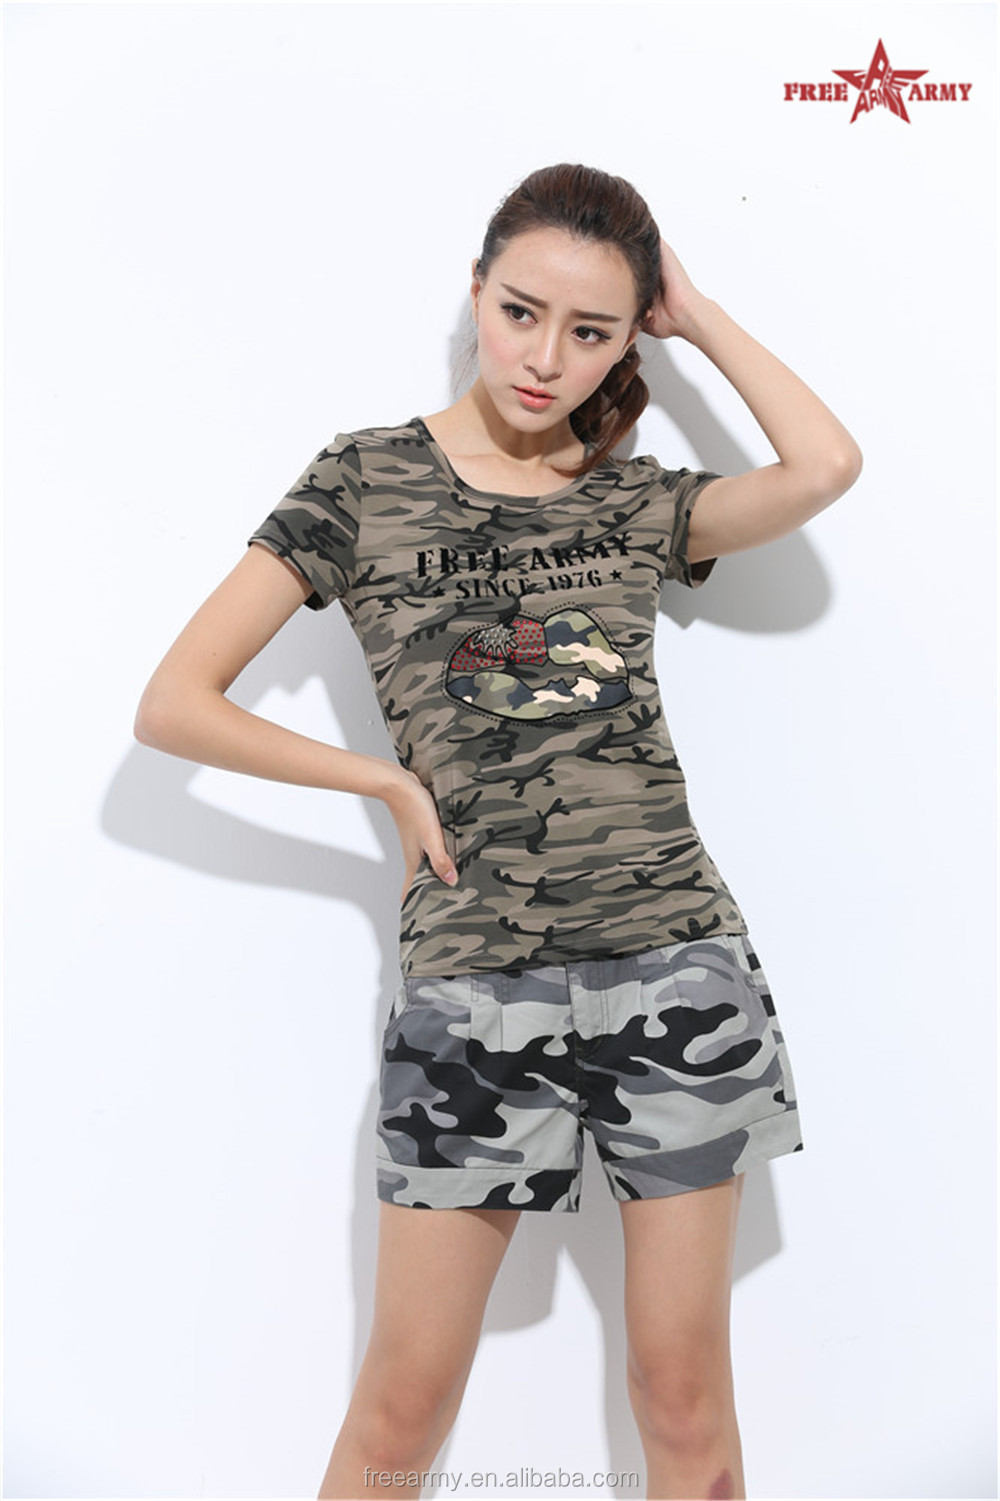 2015freearmy manufacturer wholesale sequin tee shirt buy for Sequin t shirt changing